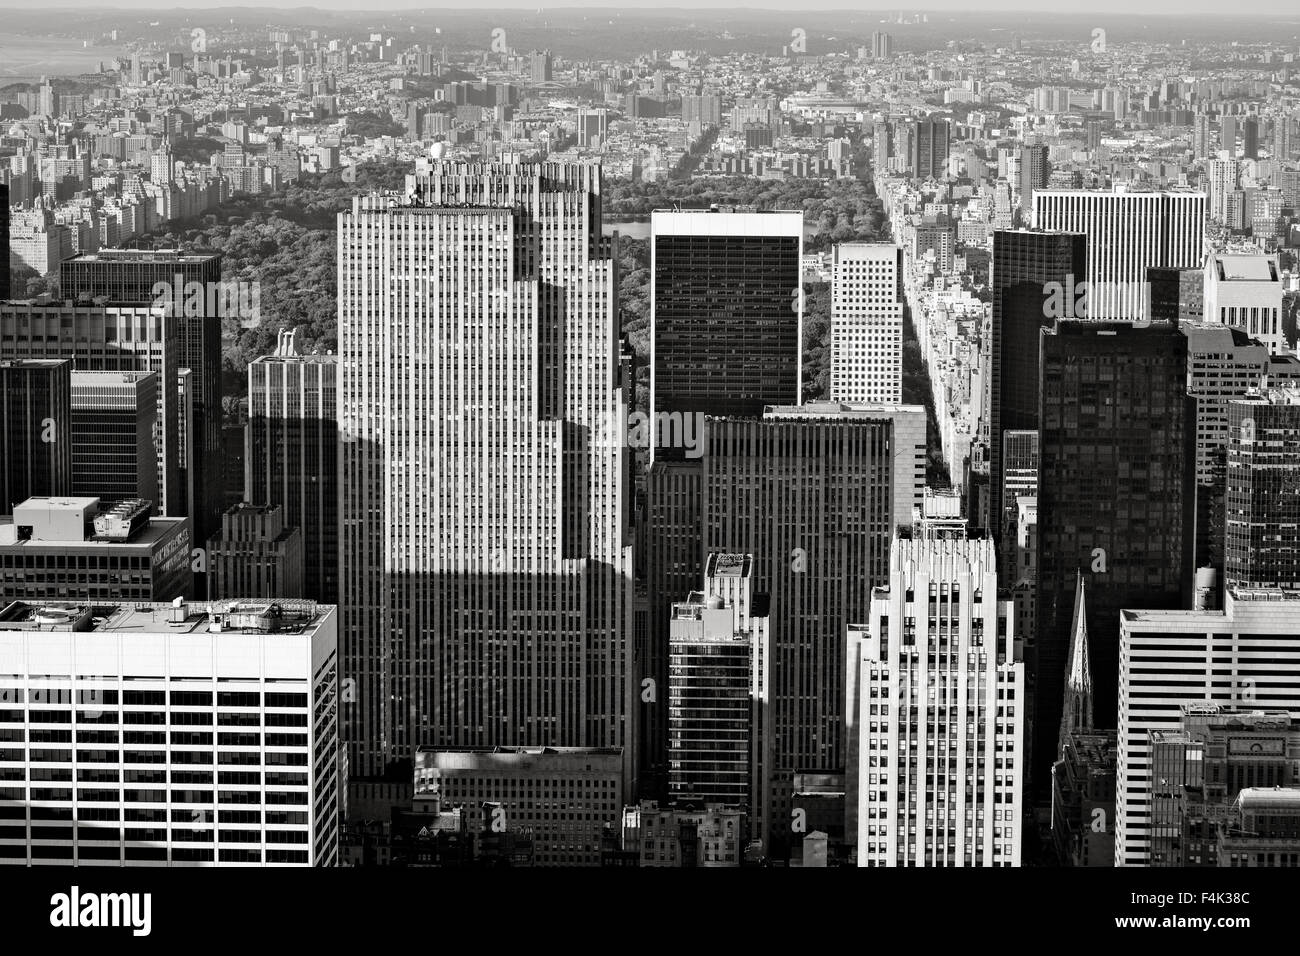 Midtown Manhattan with a view of Central Park and Upper Manhattan. Aerial view of Manhattan's skyscrapers, New - Stock Image